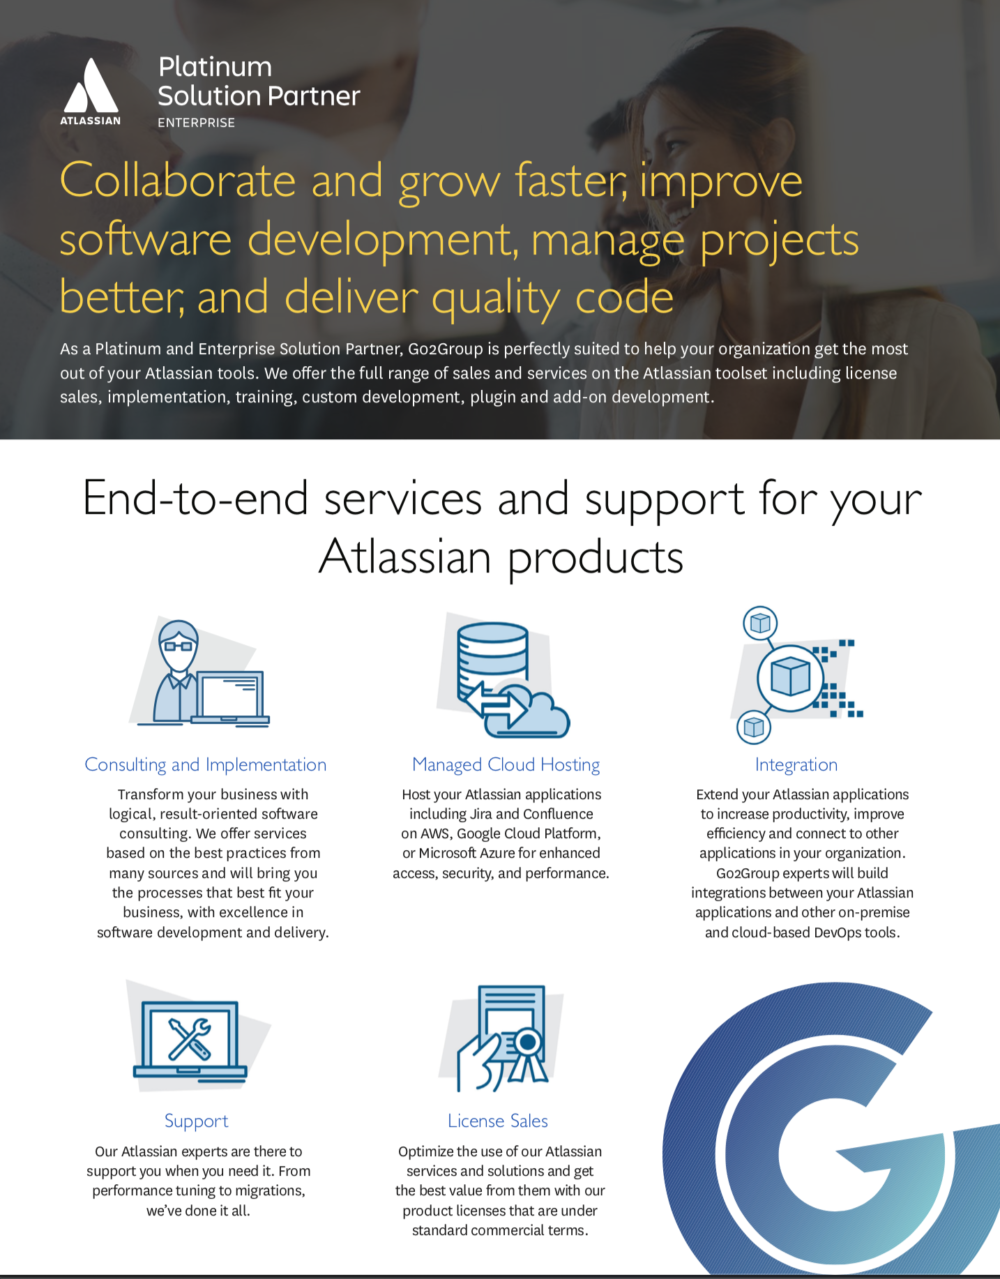 Go2Group Atlassian Solution